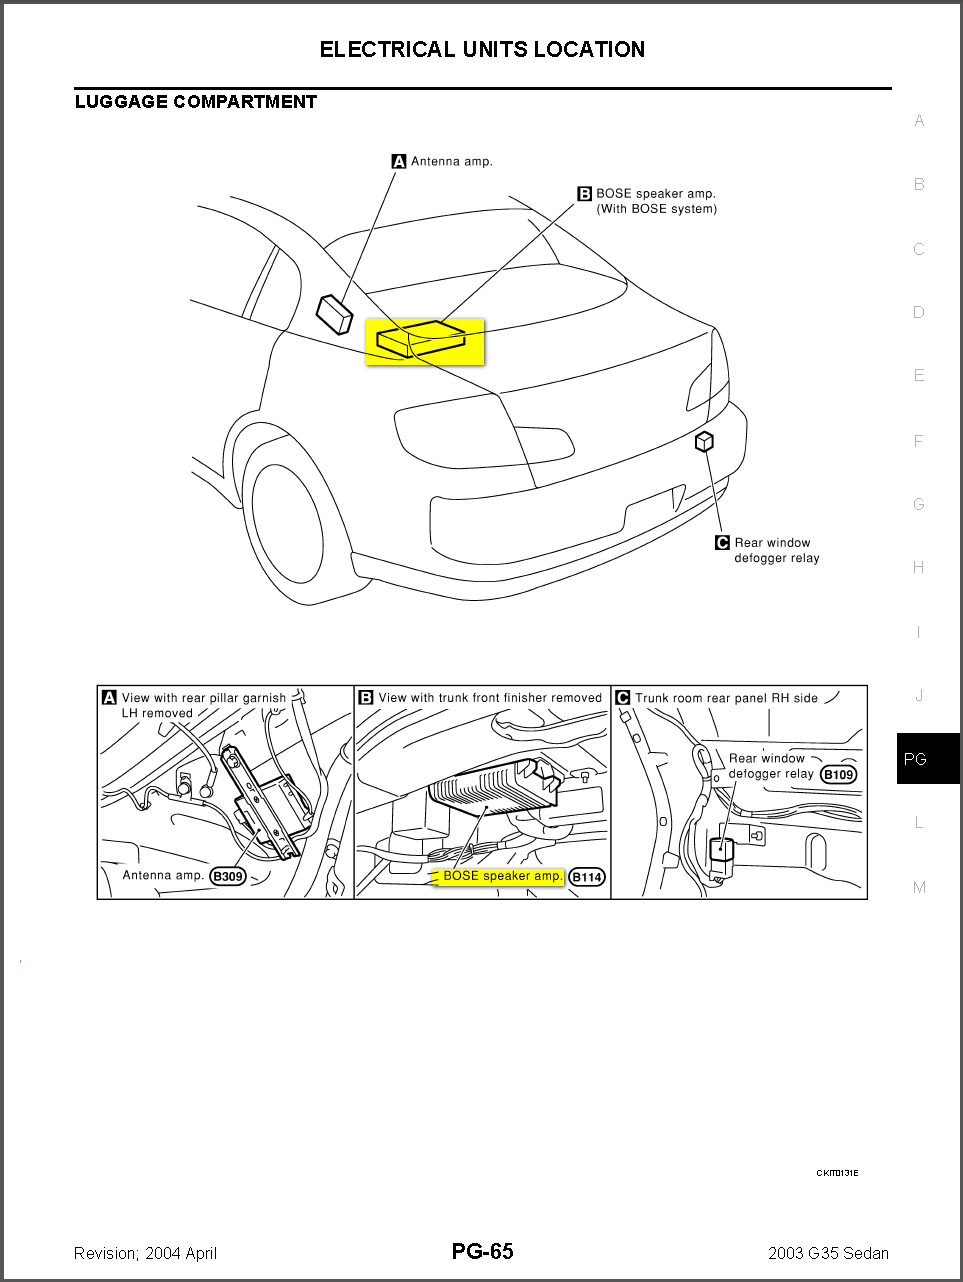 2003 infiniti g35 fuse box diagram eHONhwg g35 fuse box wiring diagram simonand 2004 infiniti g35 fuse box diagram at reclaimingppi.co